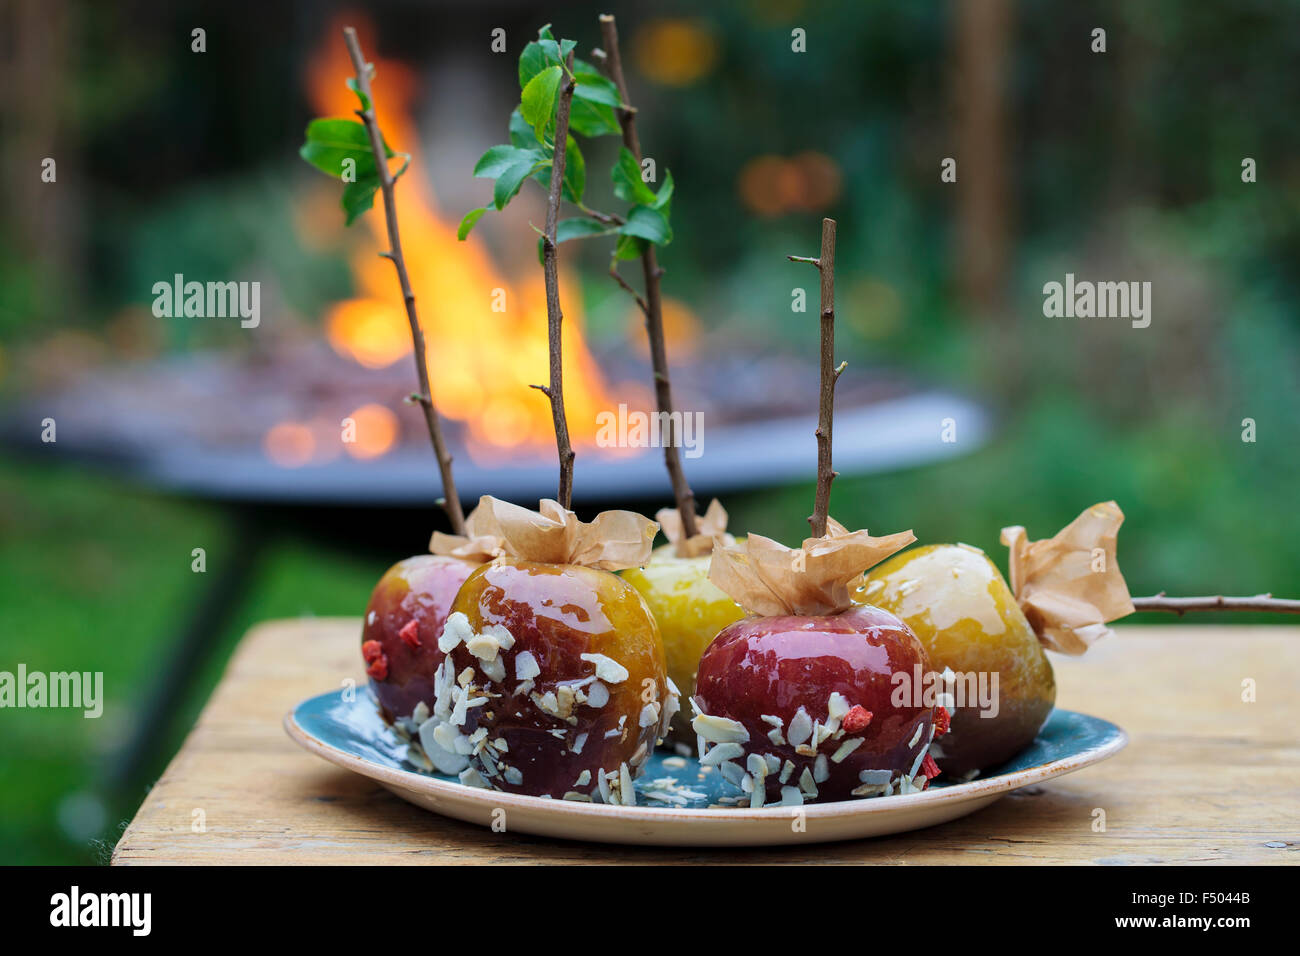 Toffee apples and a bonfire in the background - Stock Image